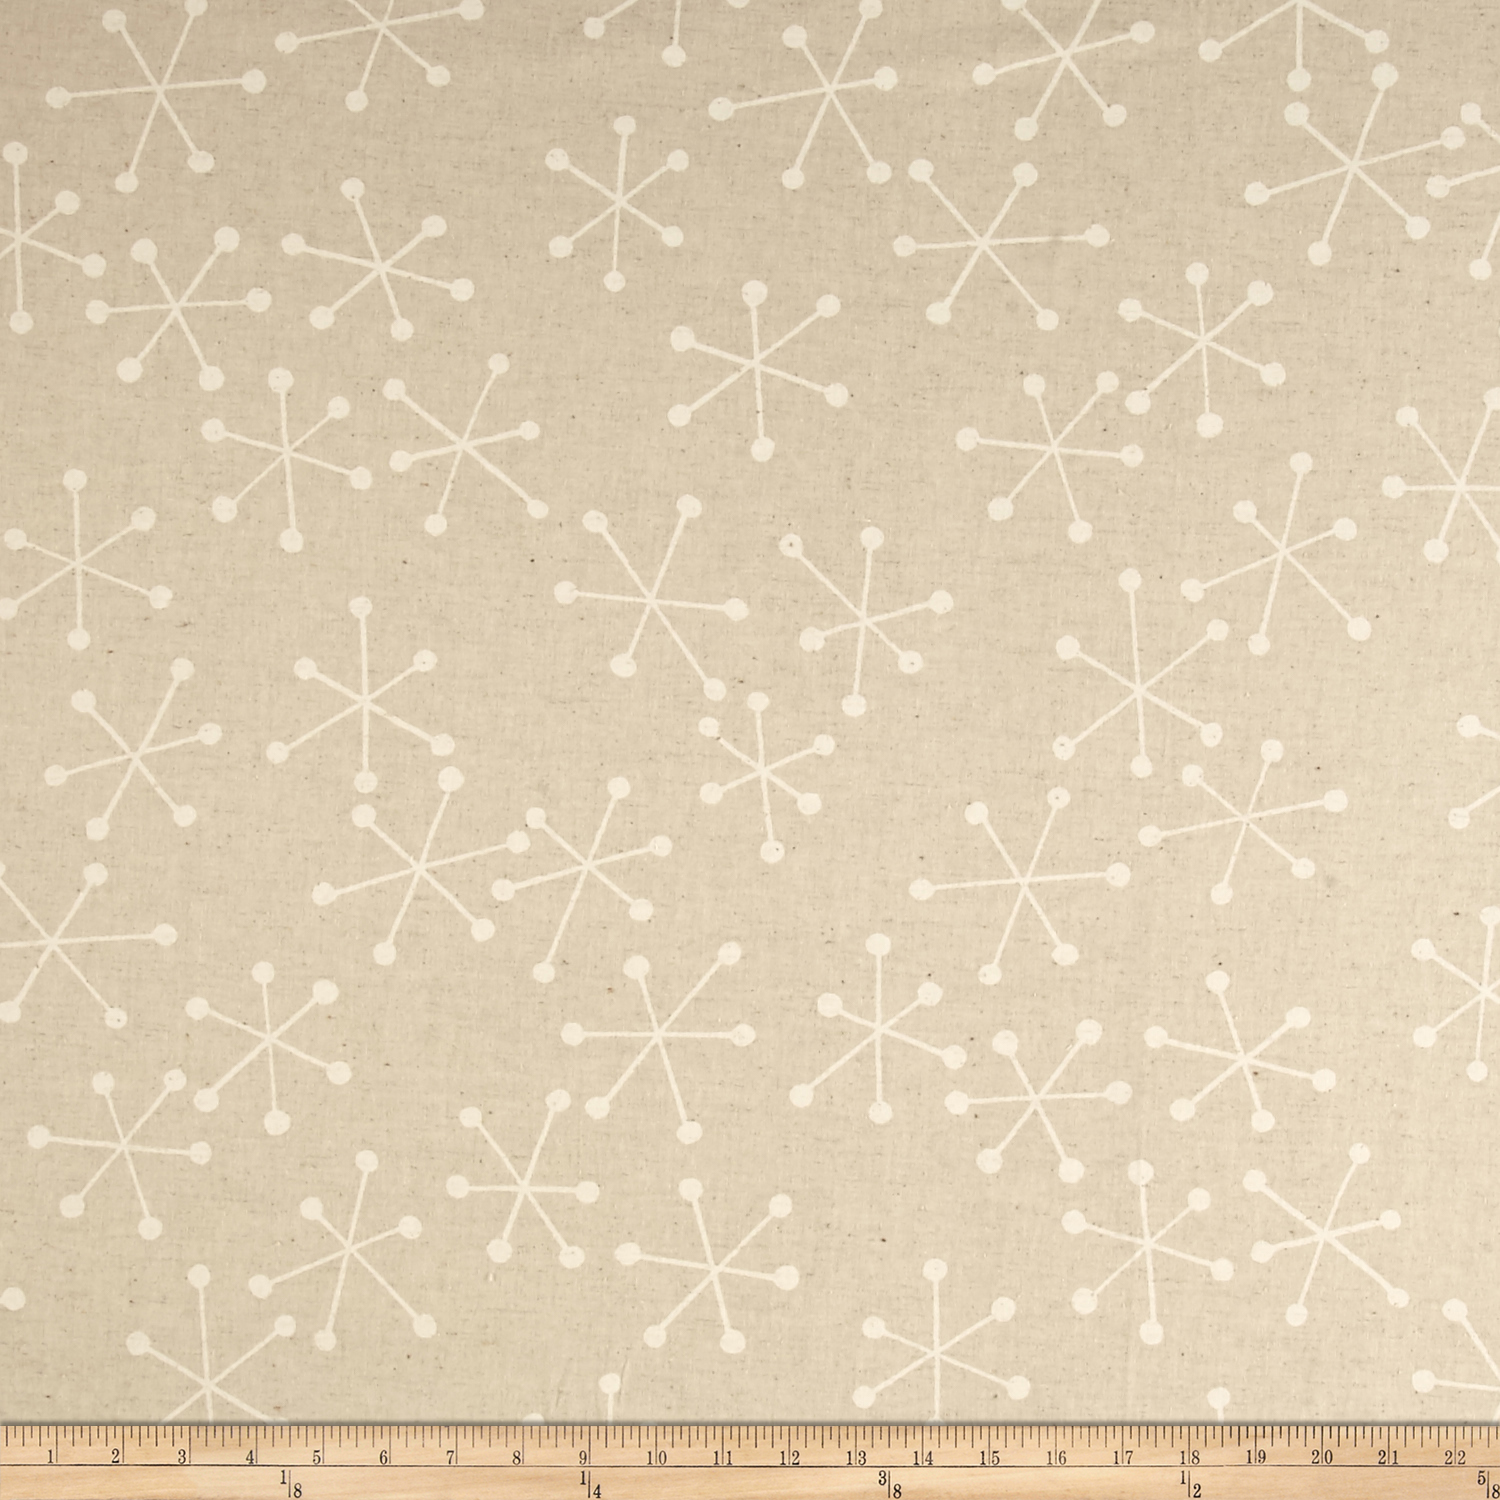 Kaufman Sevenberry Canvas Cotton Flax Prints Geo White Fabric by Kaufman in USA